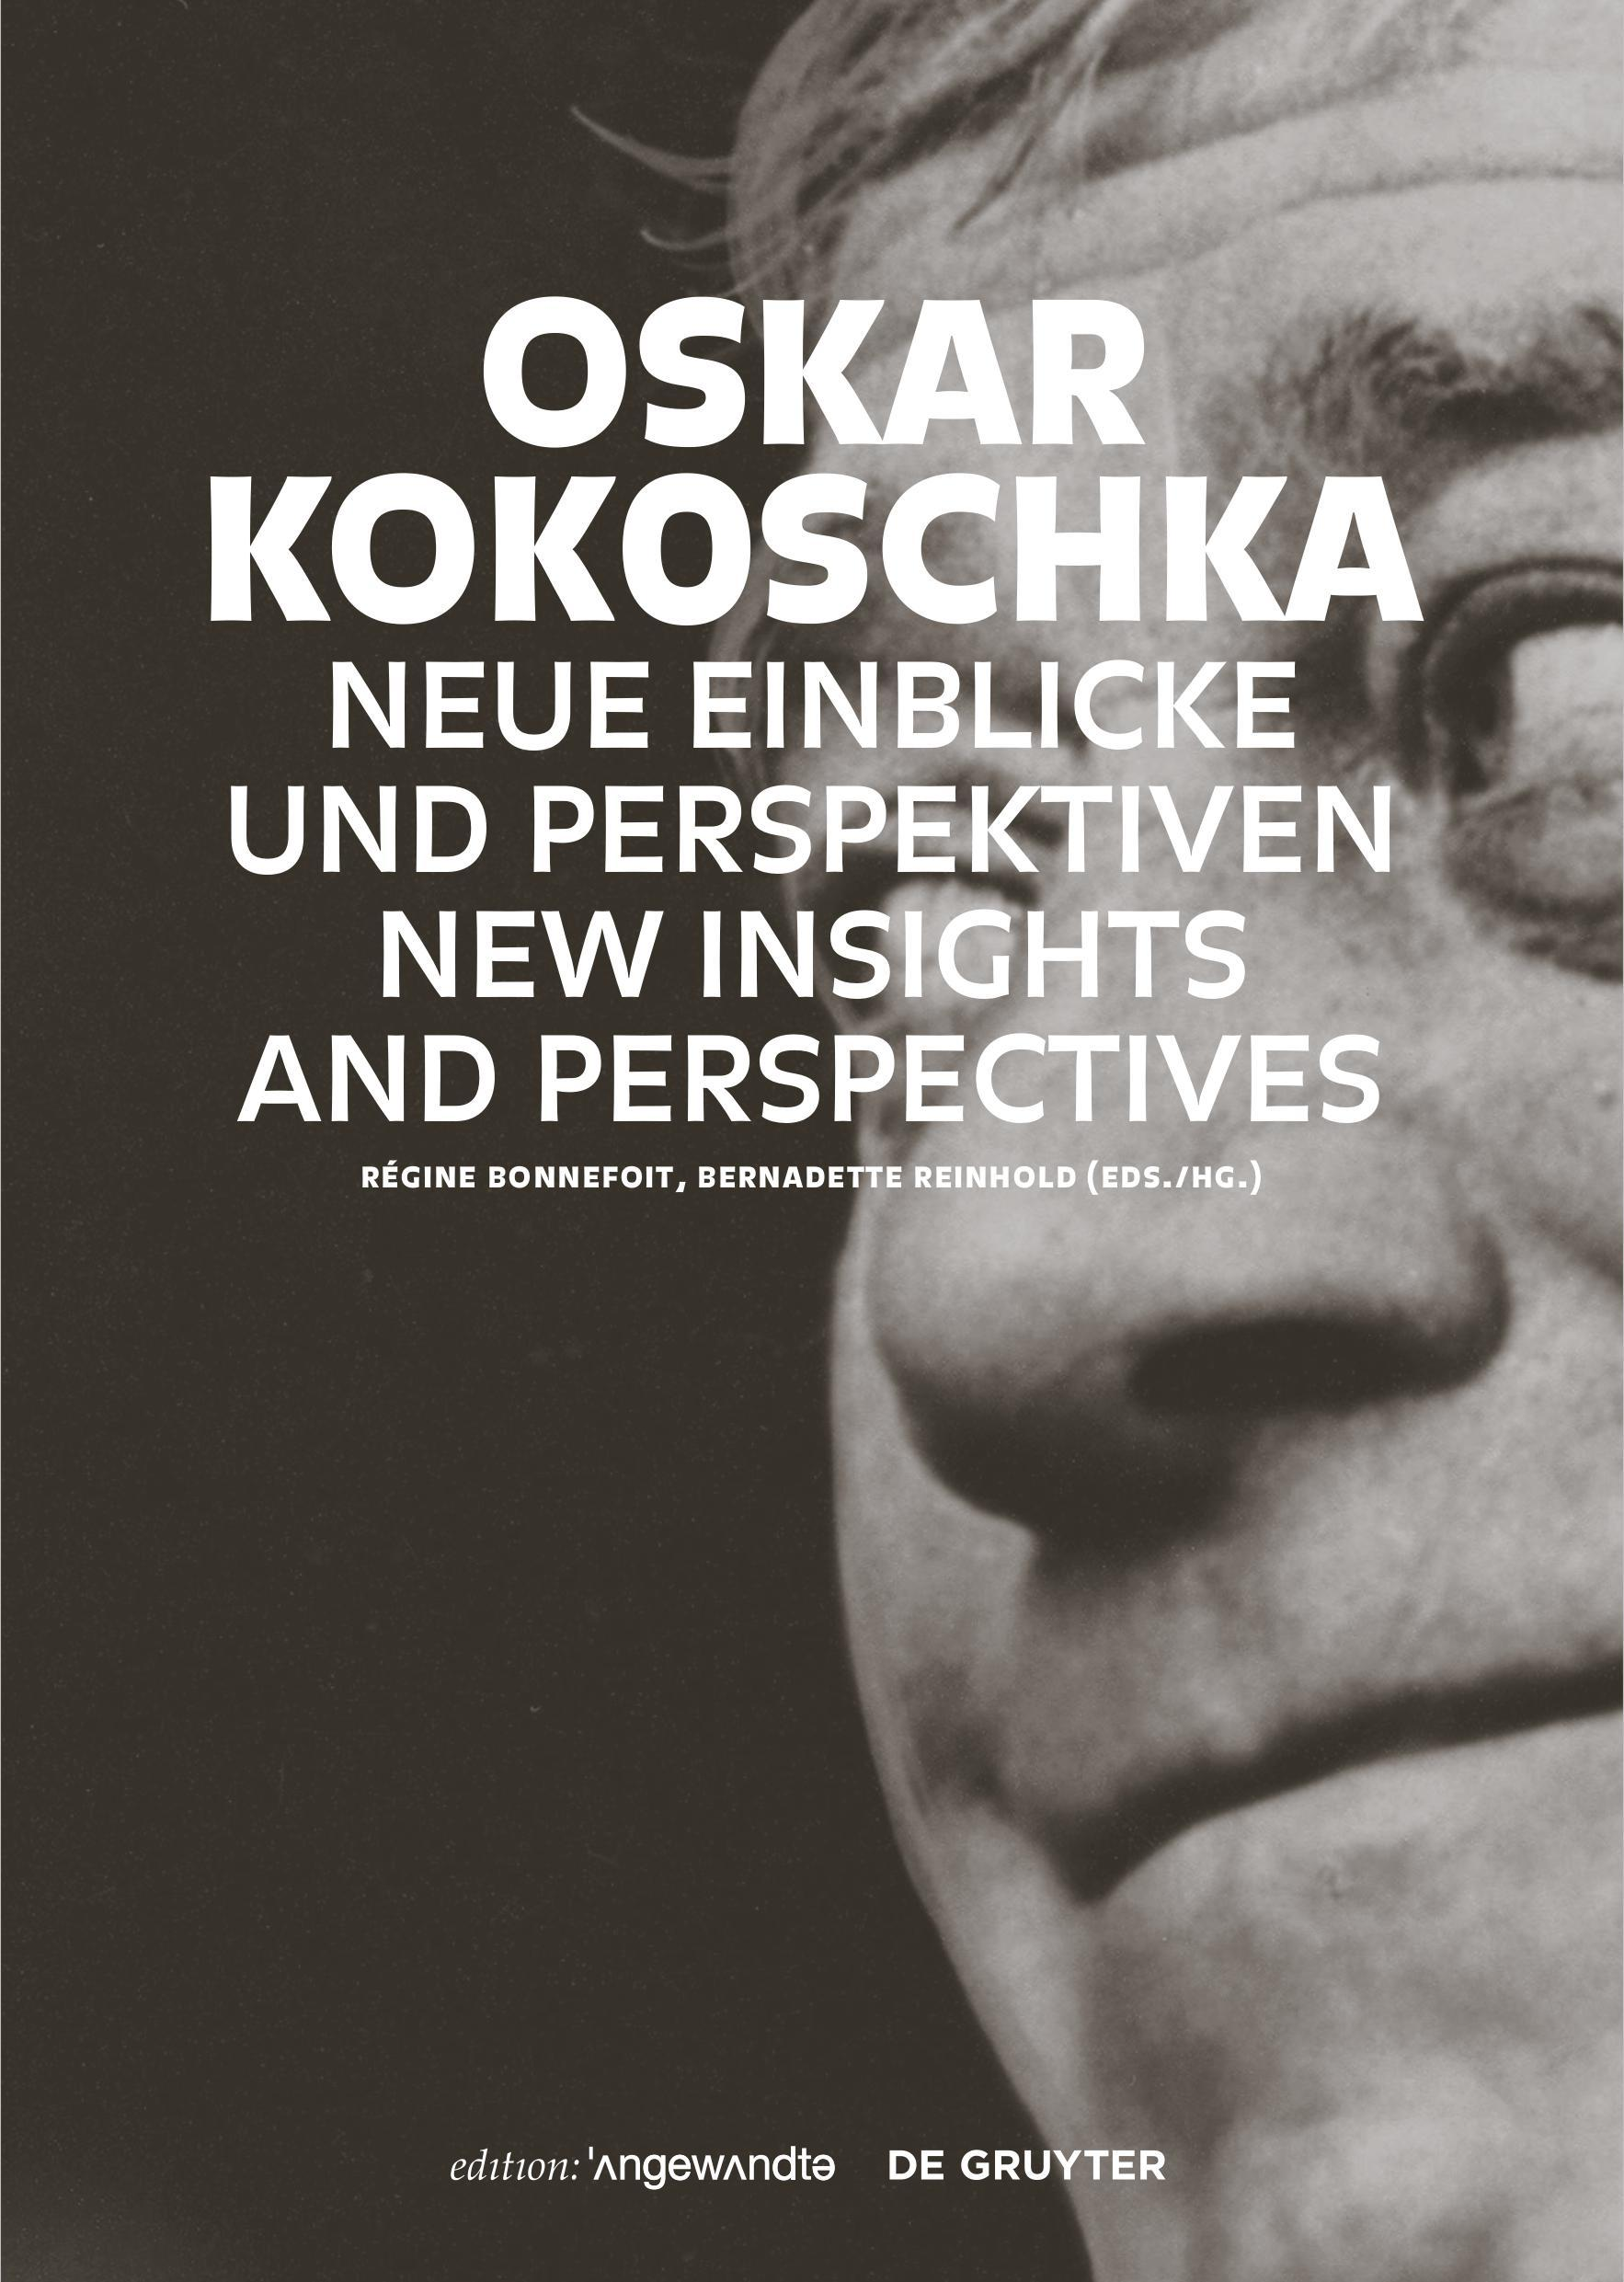 Bernadette Reinhold (hg. mit Régine Bonnefoit), Oskar Kokoschka. Neue Einblicke und Perspektiven, New Insights and Perspectives, Edition Angewandte, Basel/Boston: De Gruyter - Frühjahr 2021